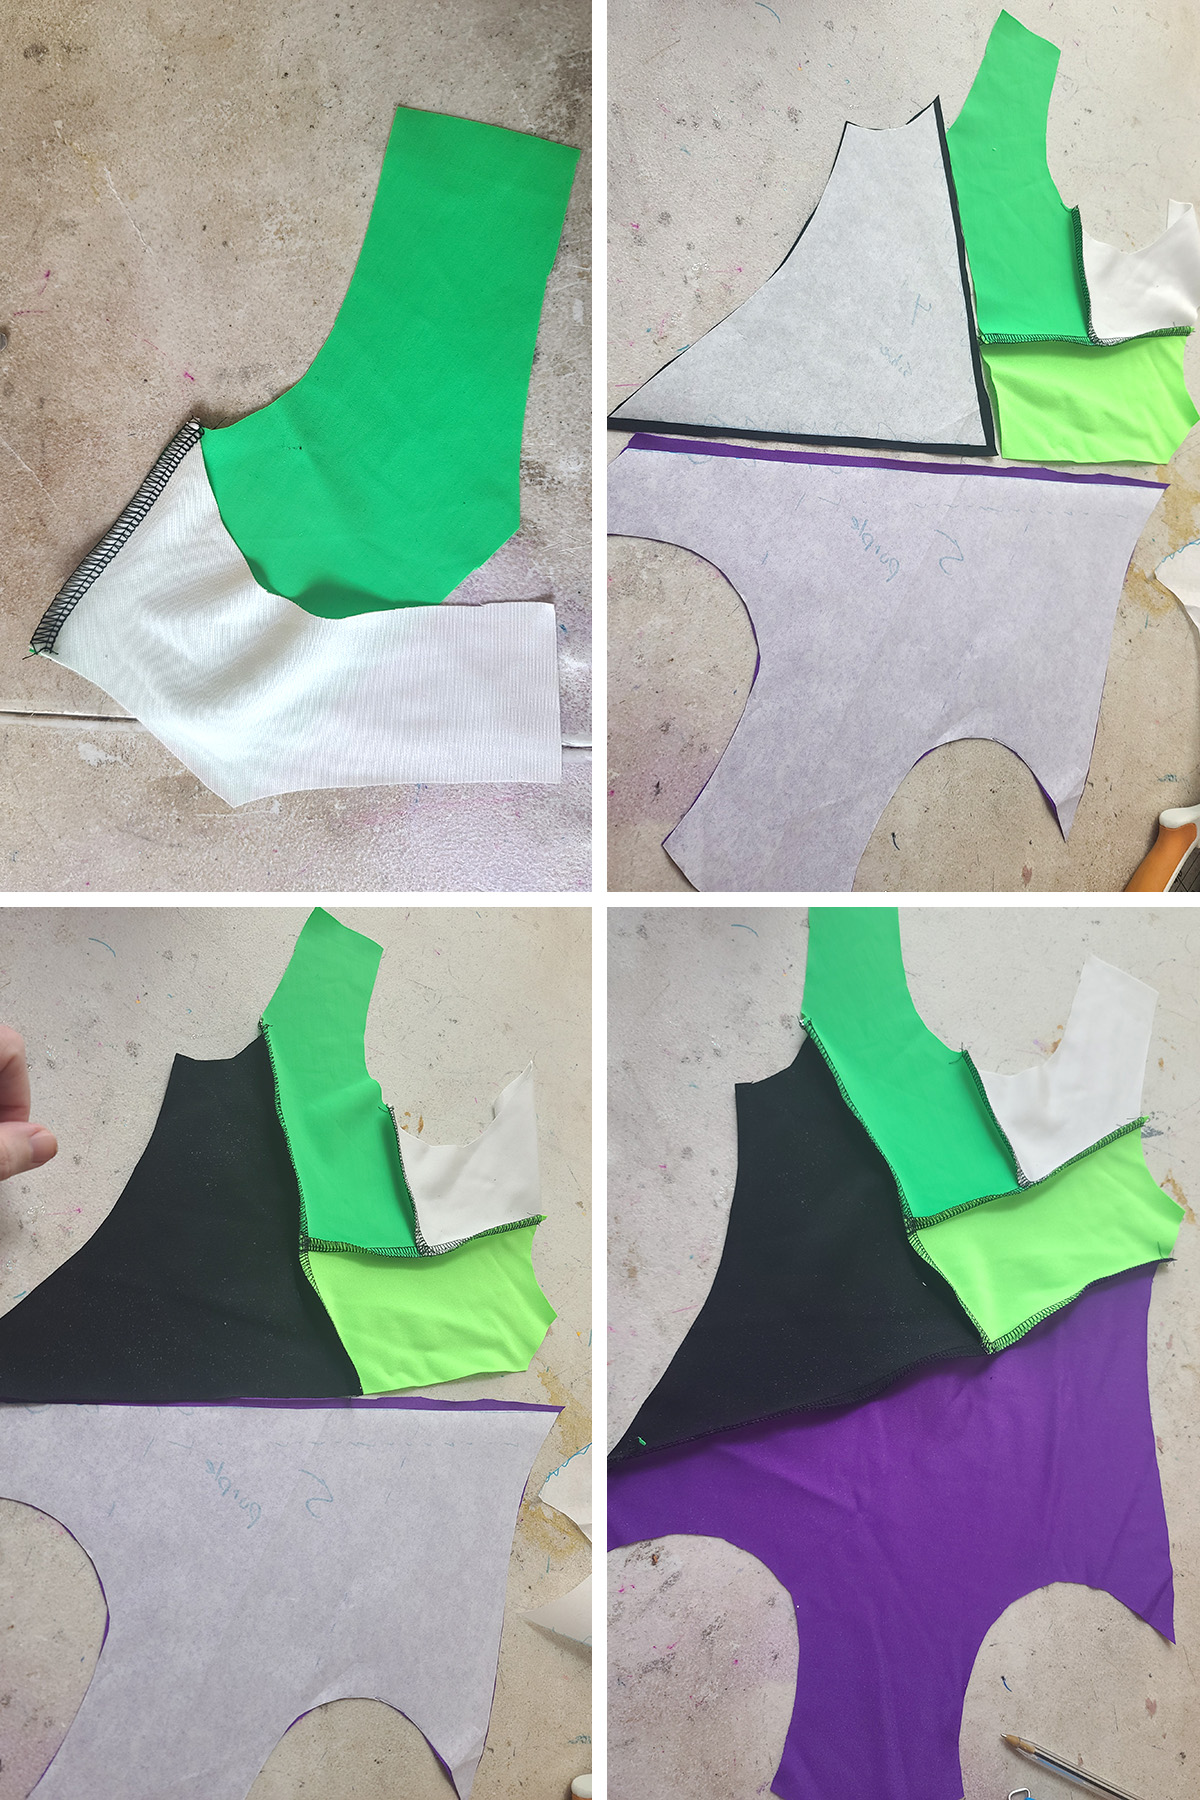 A 4 part compilation image showing the various pieces of leotard sewn together - colour blocking.